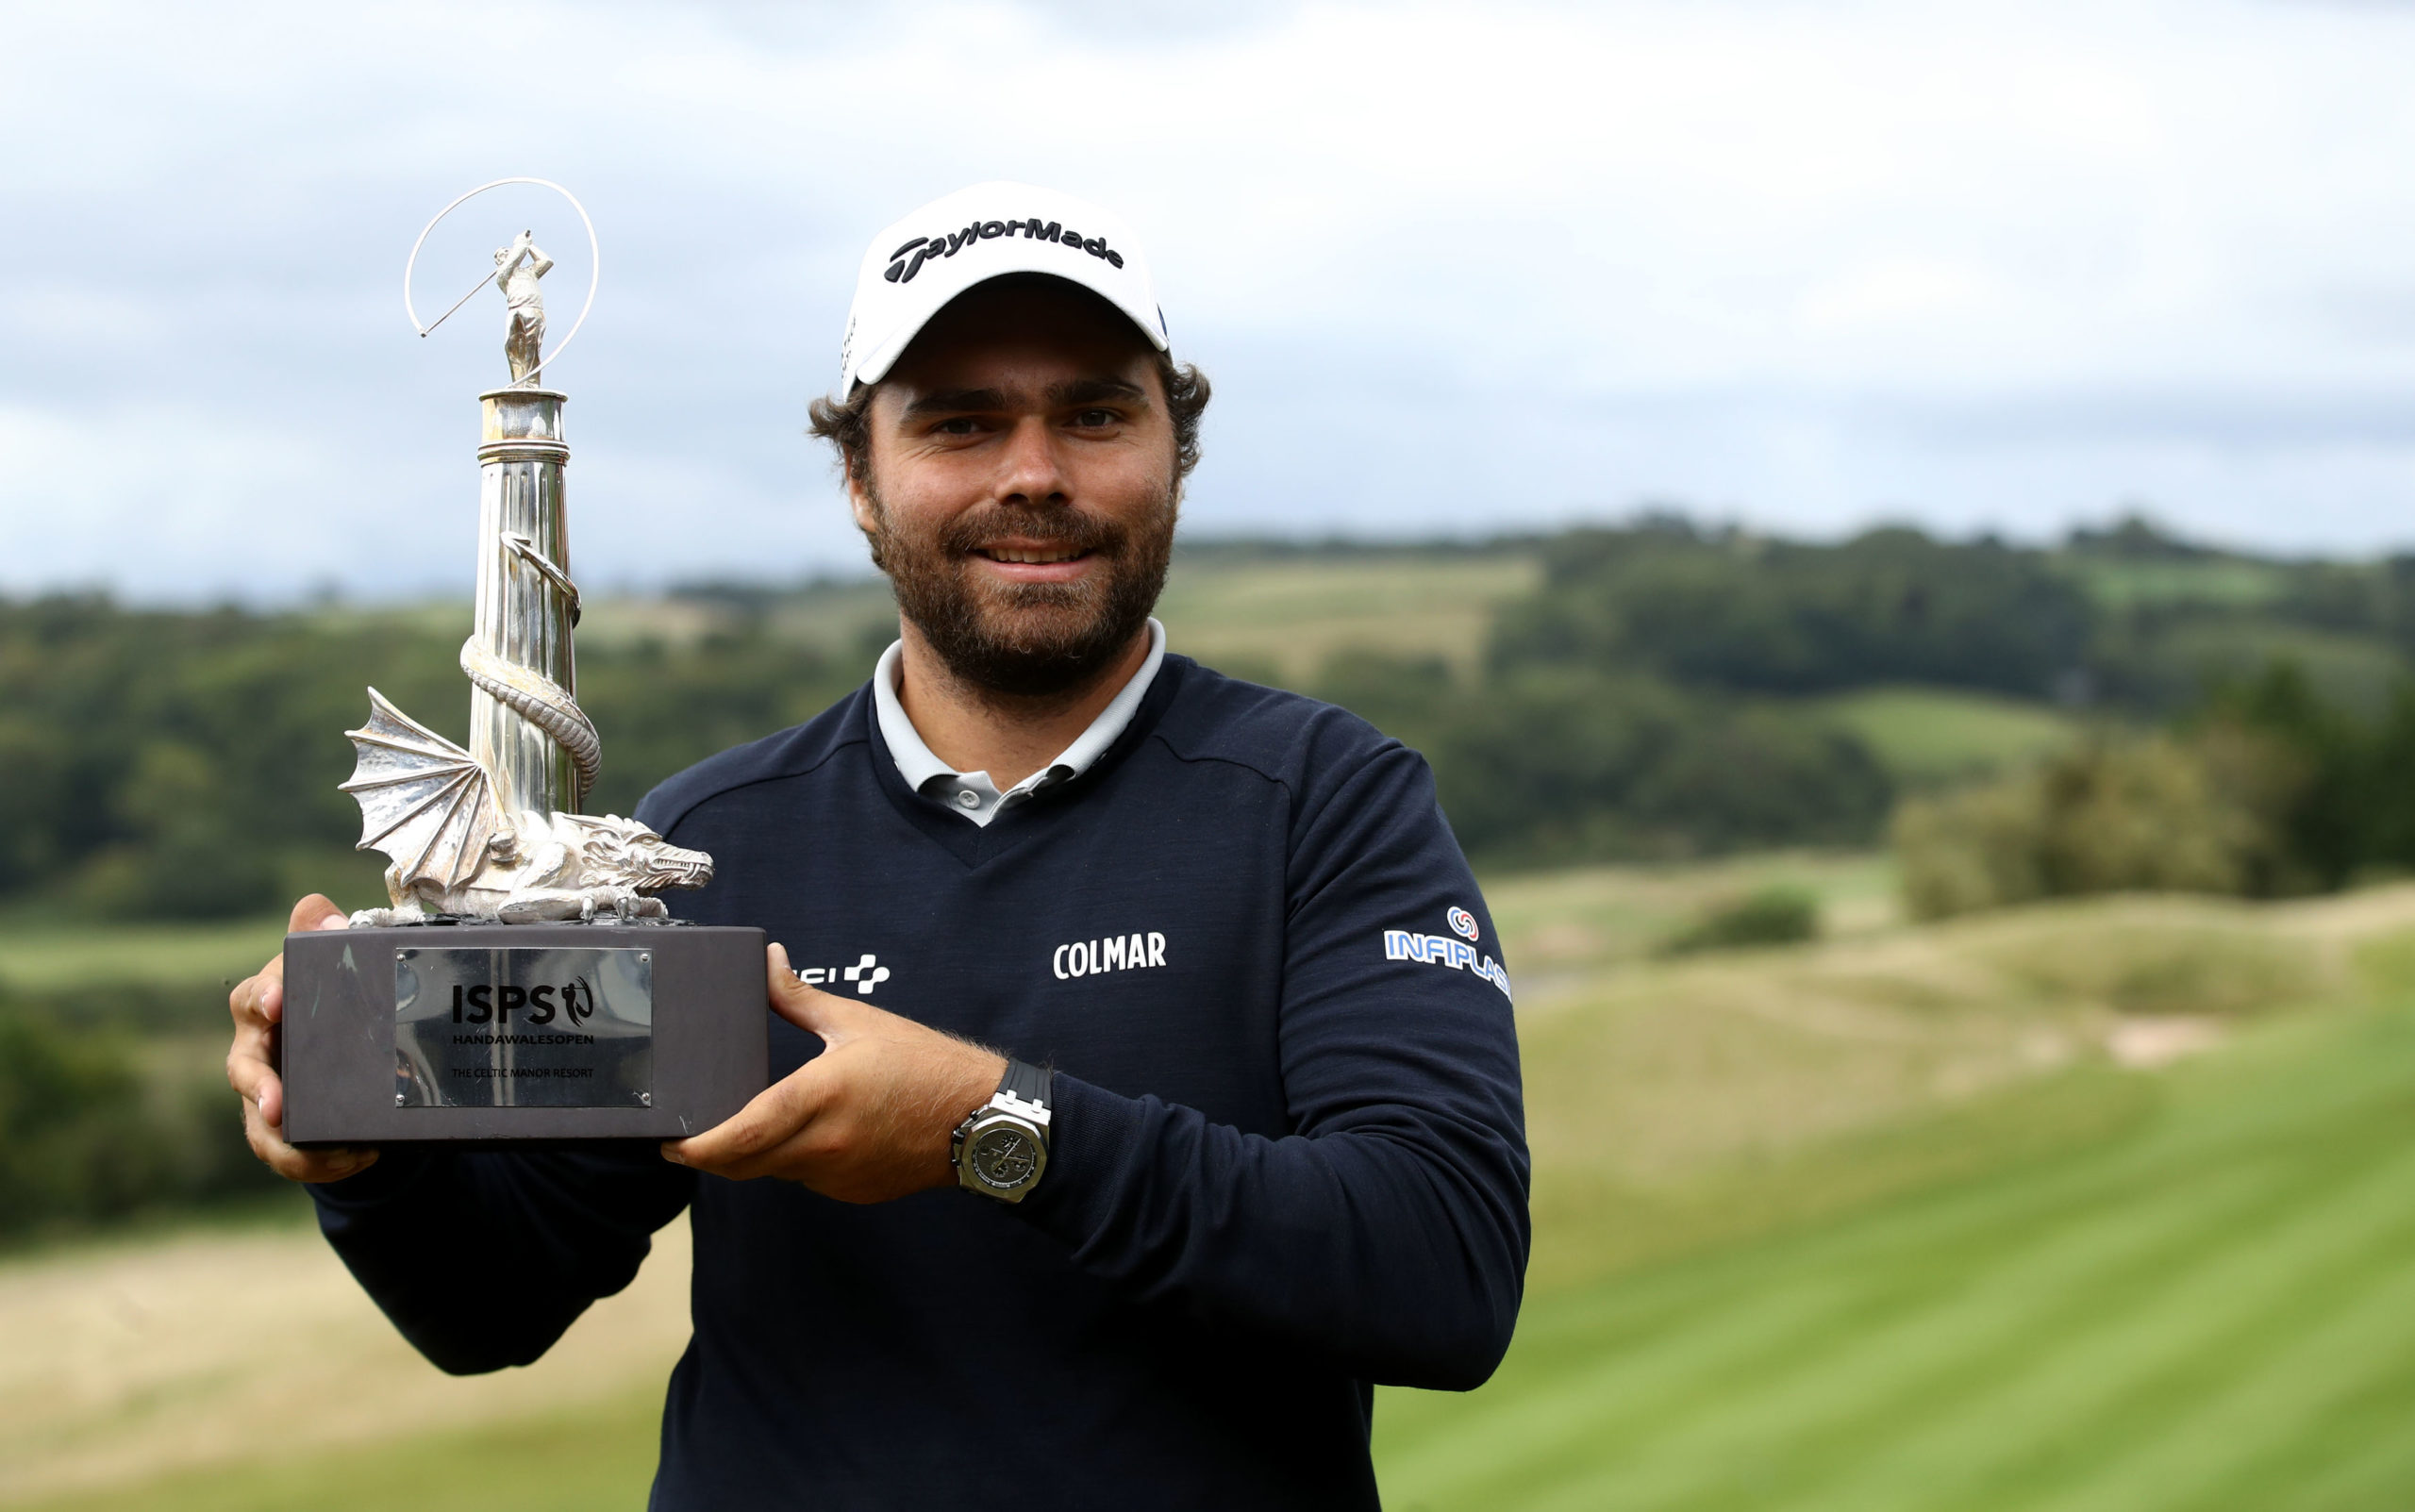 France's Romain Langasque with the ISPS Handa Wales Open trophy.